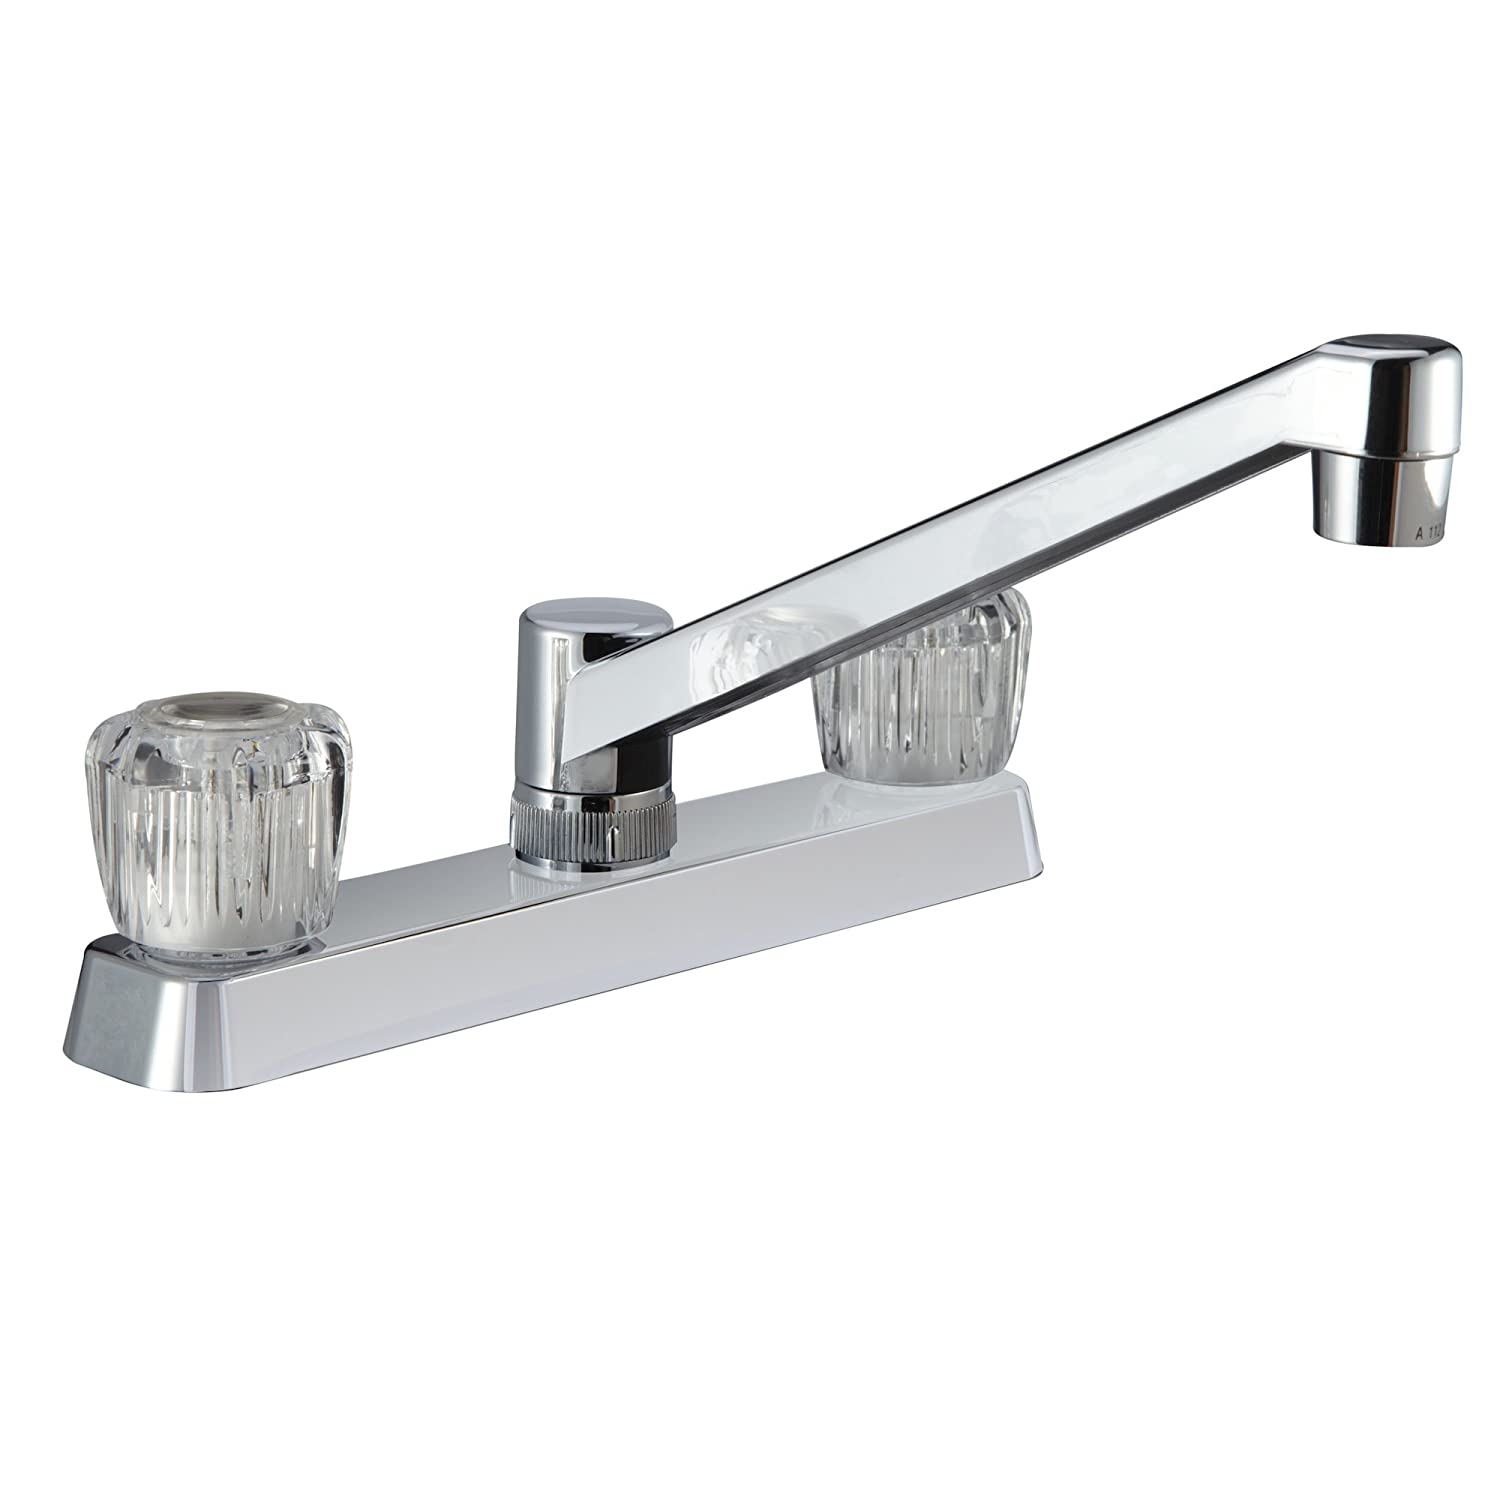 Dura Faucet DF-PK600A-CP RV Kitchen Faucet with Crystal Acrylic Knobs Chrome